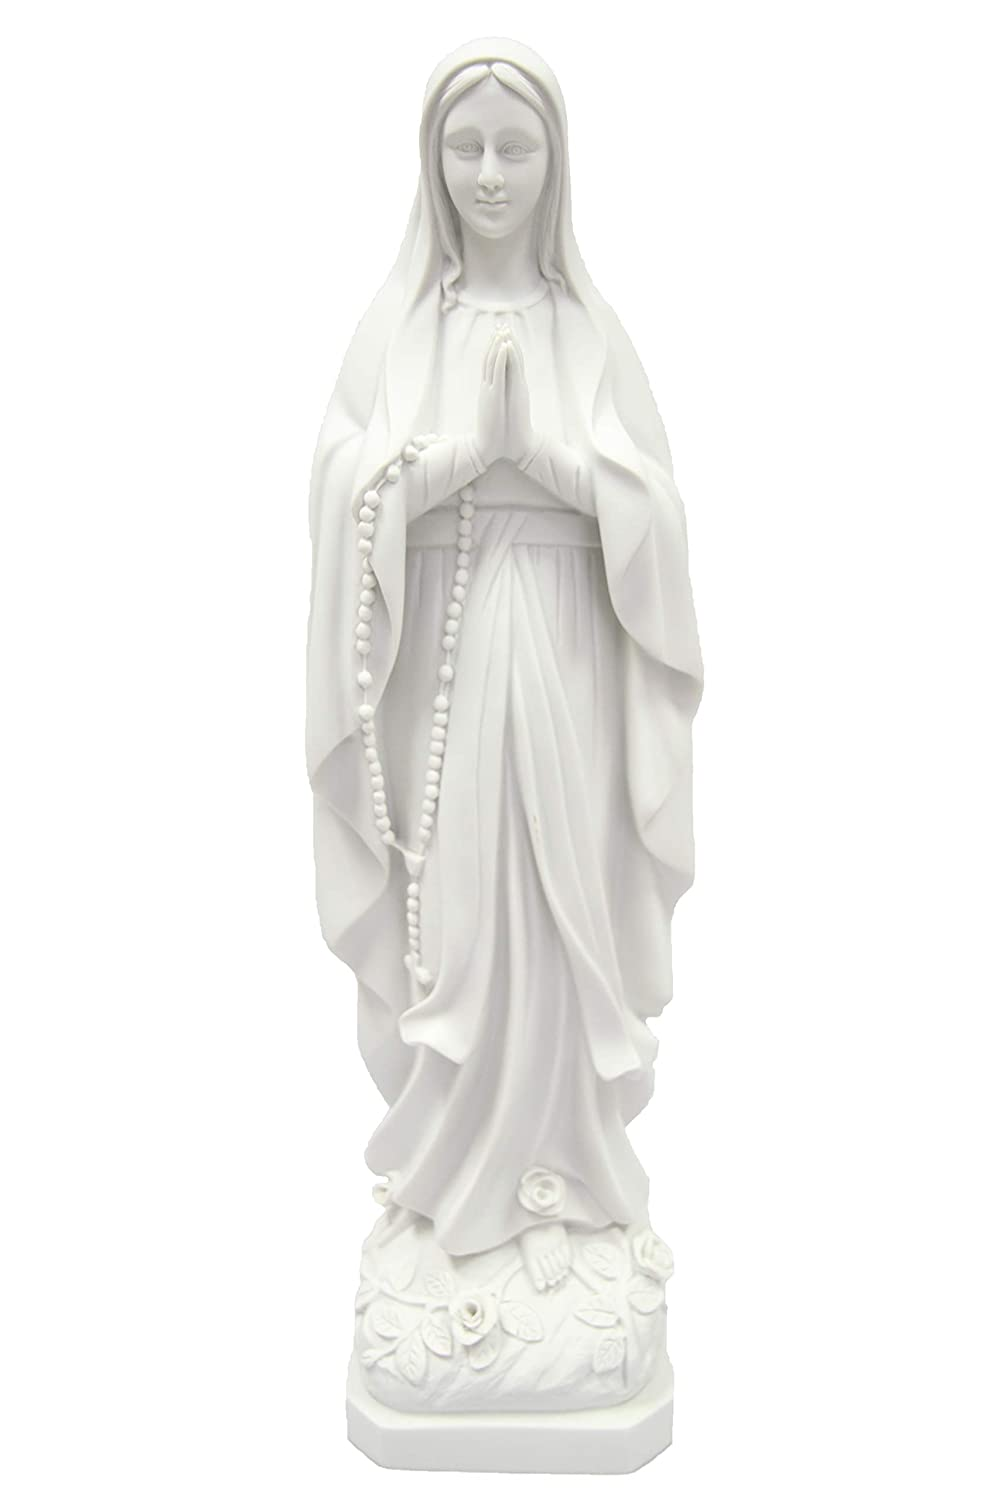 """24.5"""" Our Lady of Lourdes Virgin Mary Catholic Statue Sculpture Religious Figure Vittoria Made in Italy"""